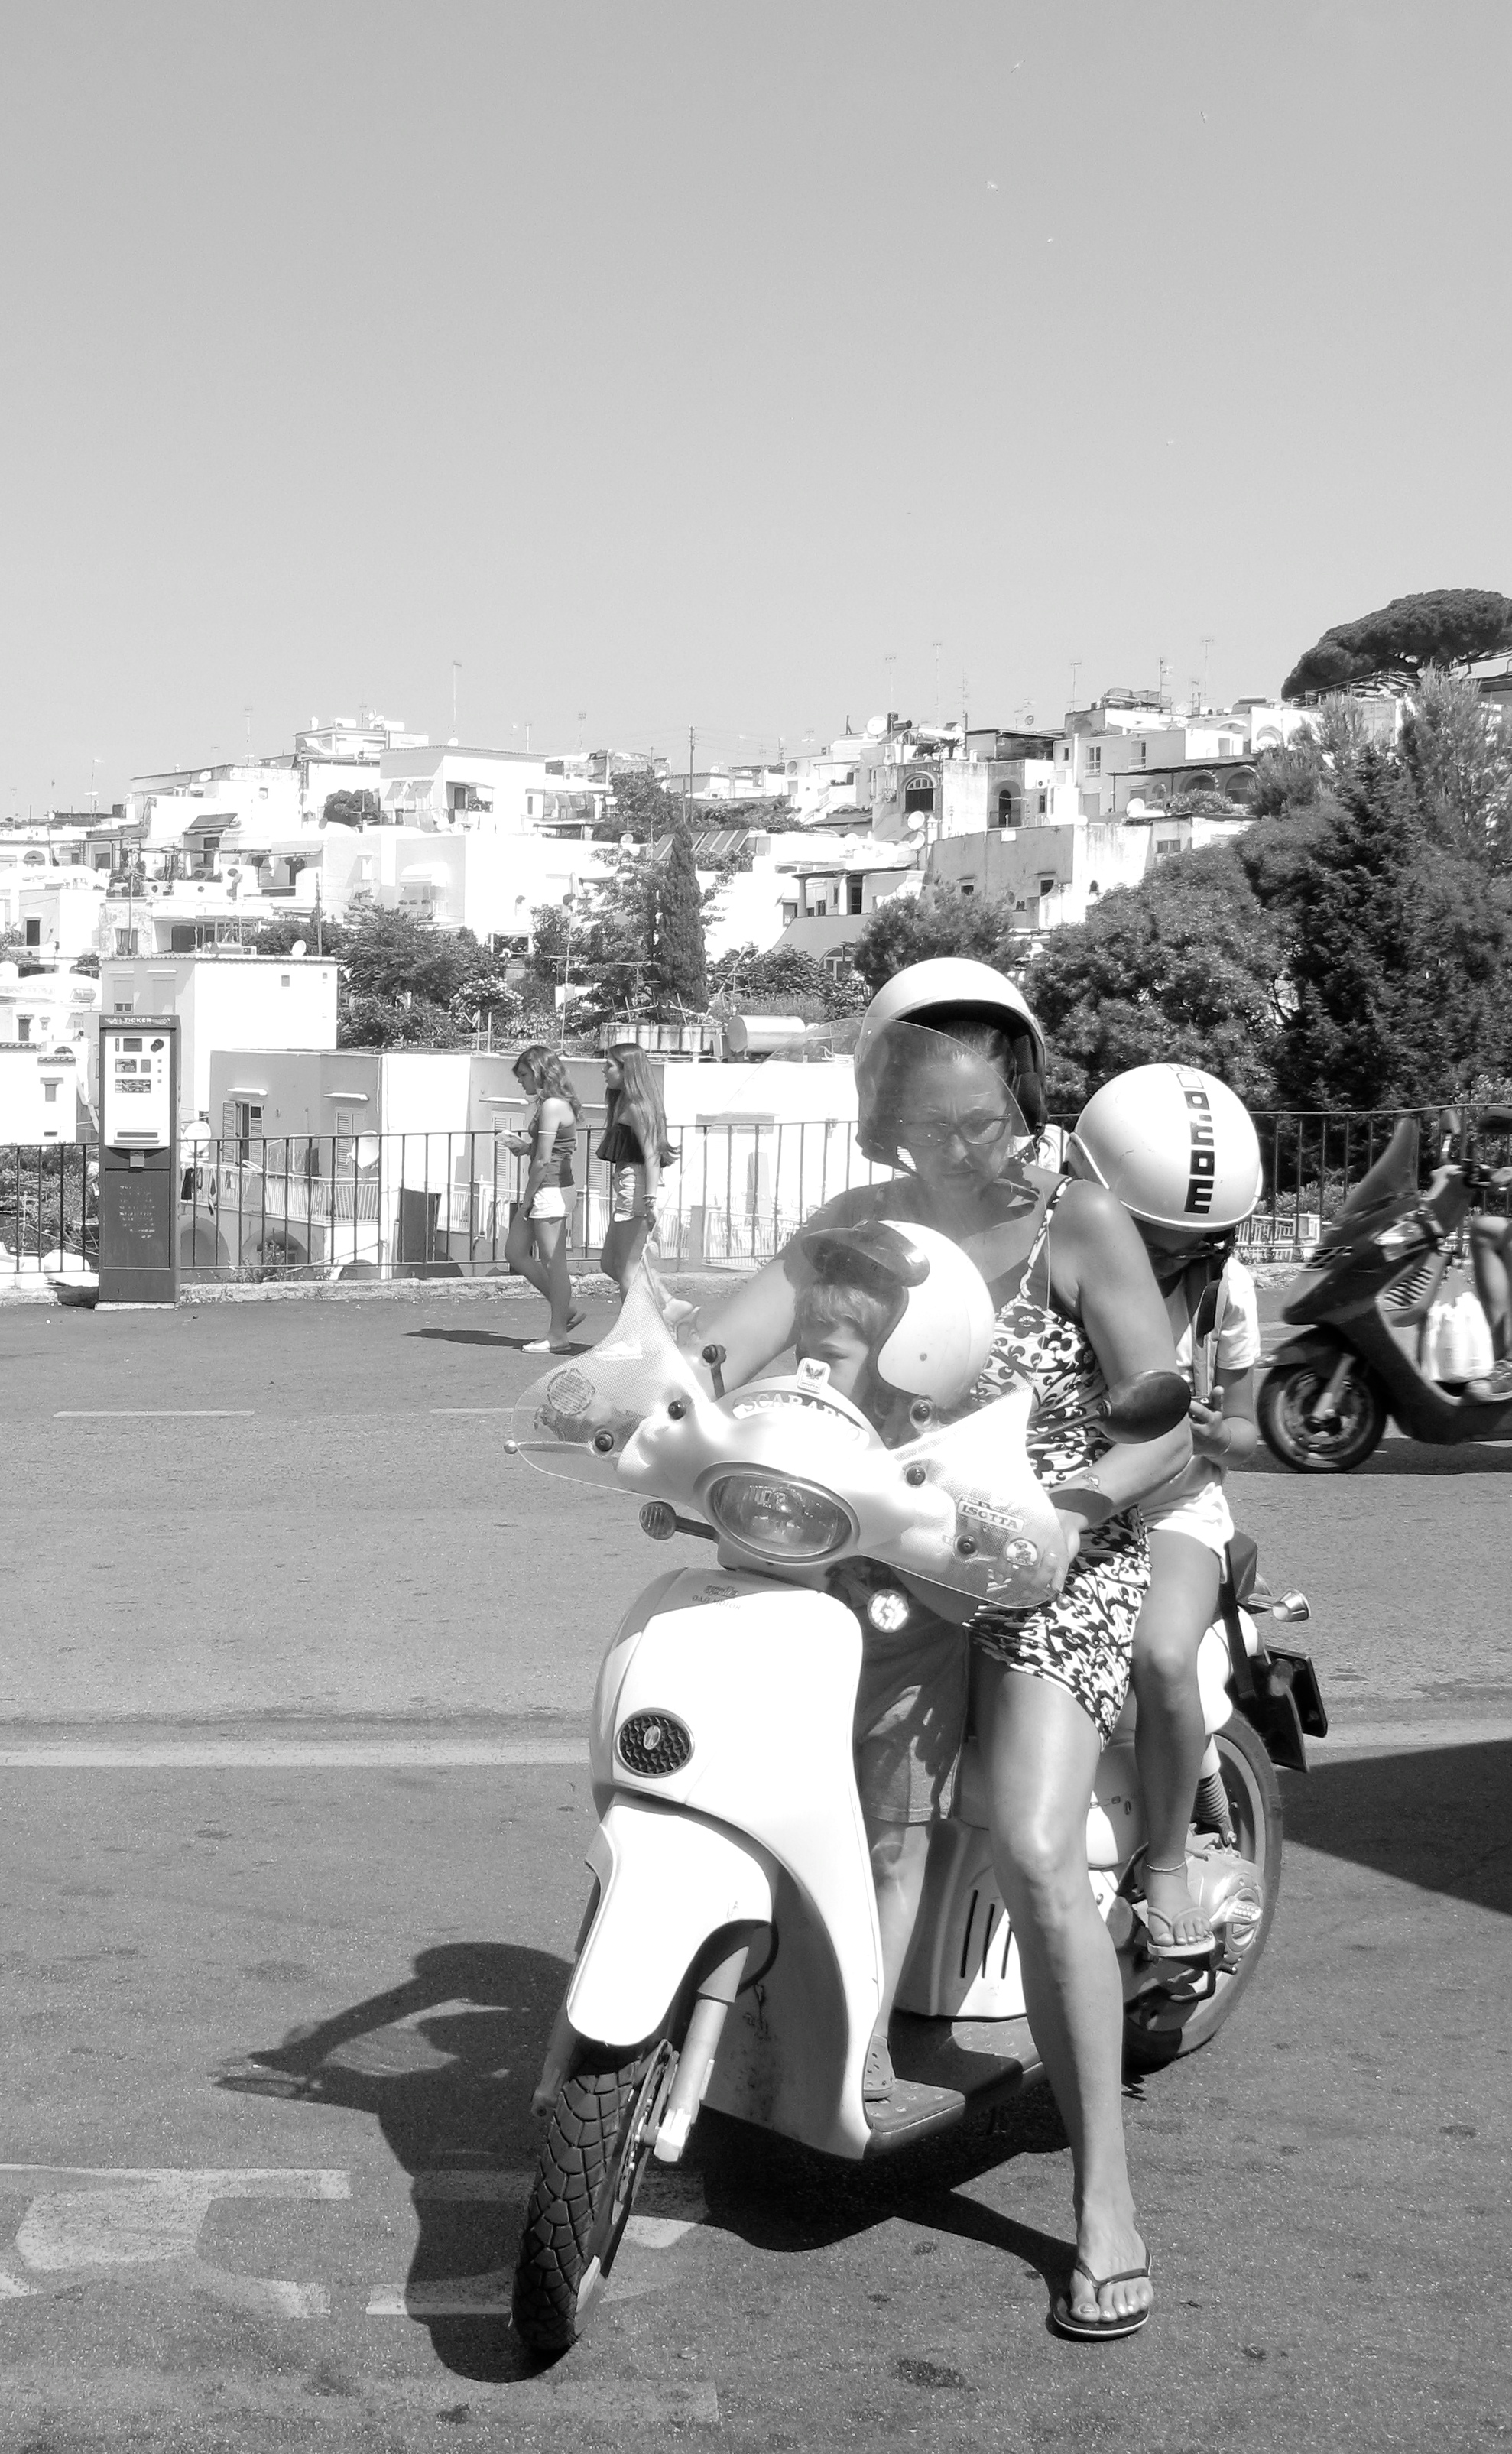 A mother and two children on a scooter - so Italian!